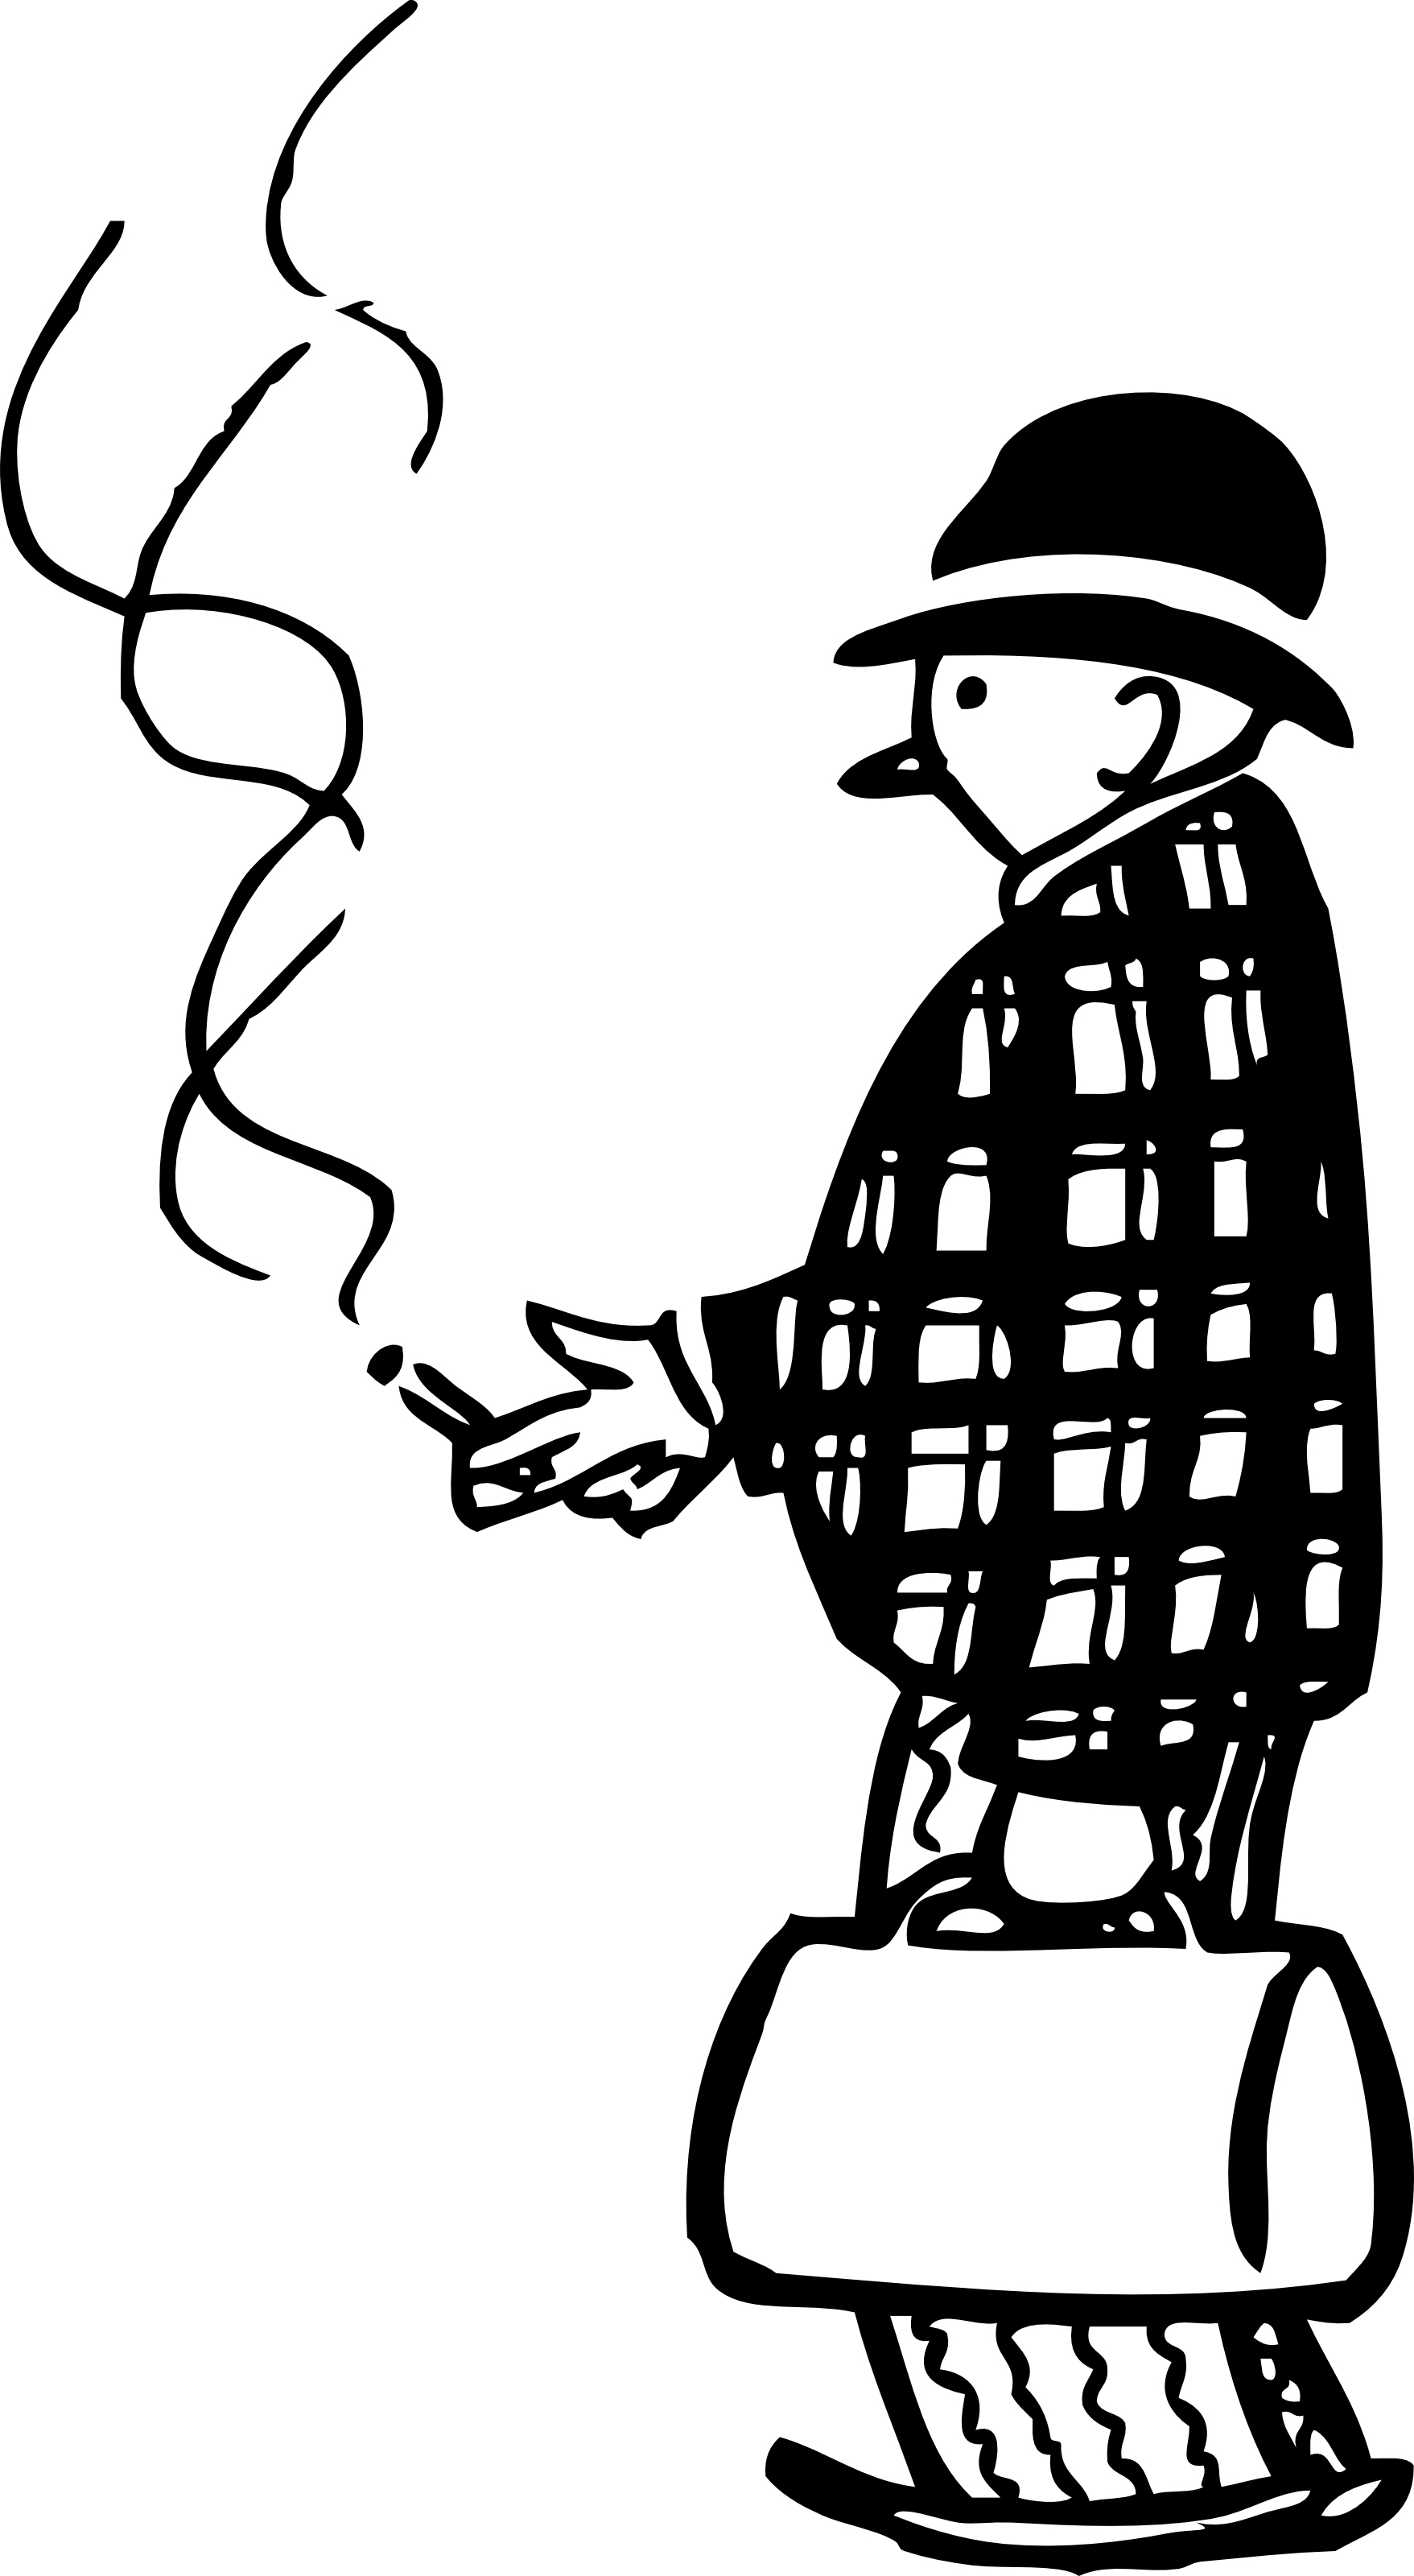 Use for Tobacco Free Clip Art.